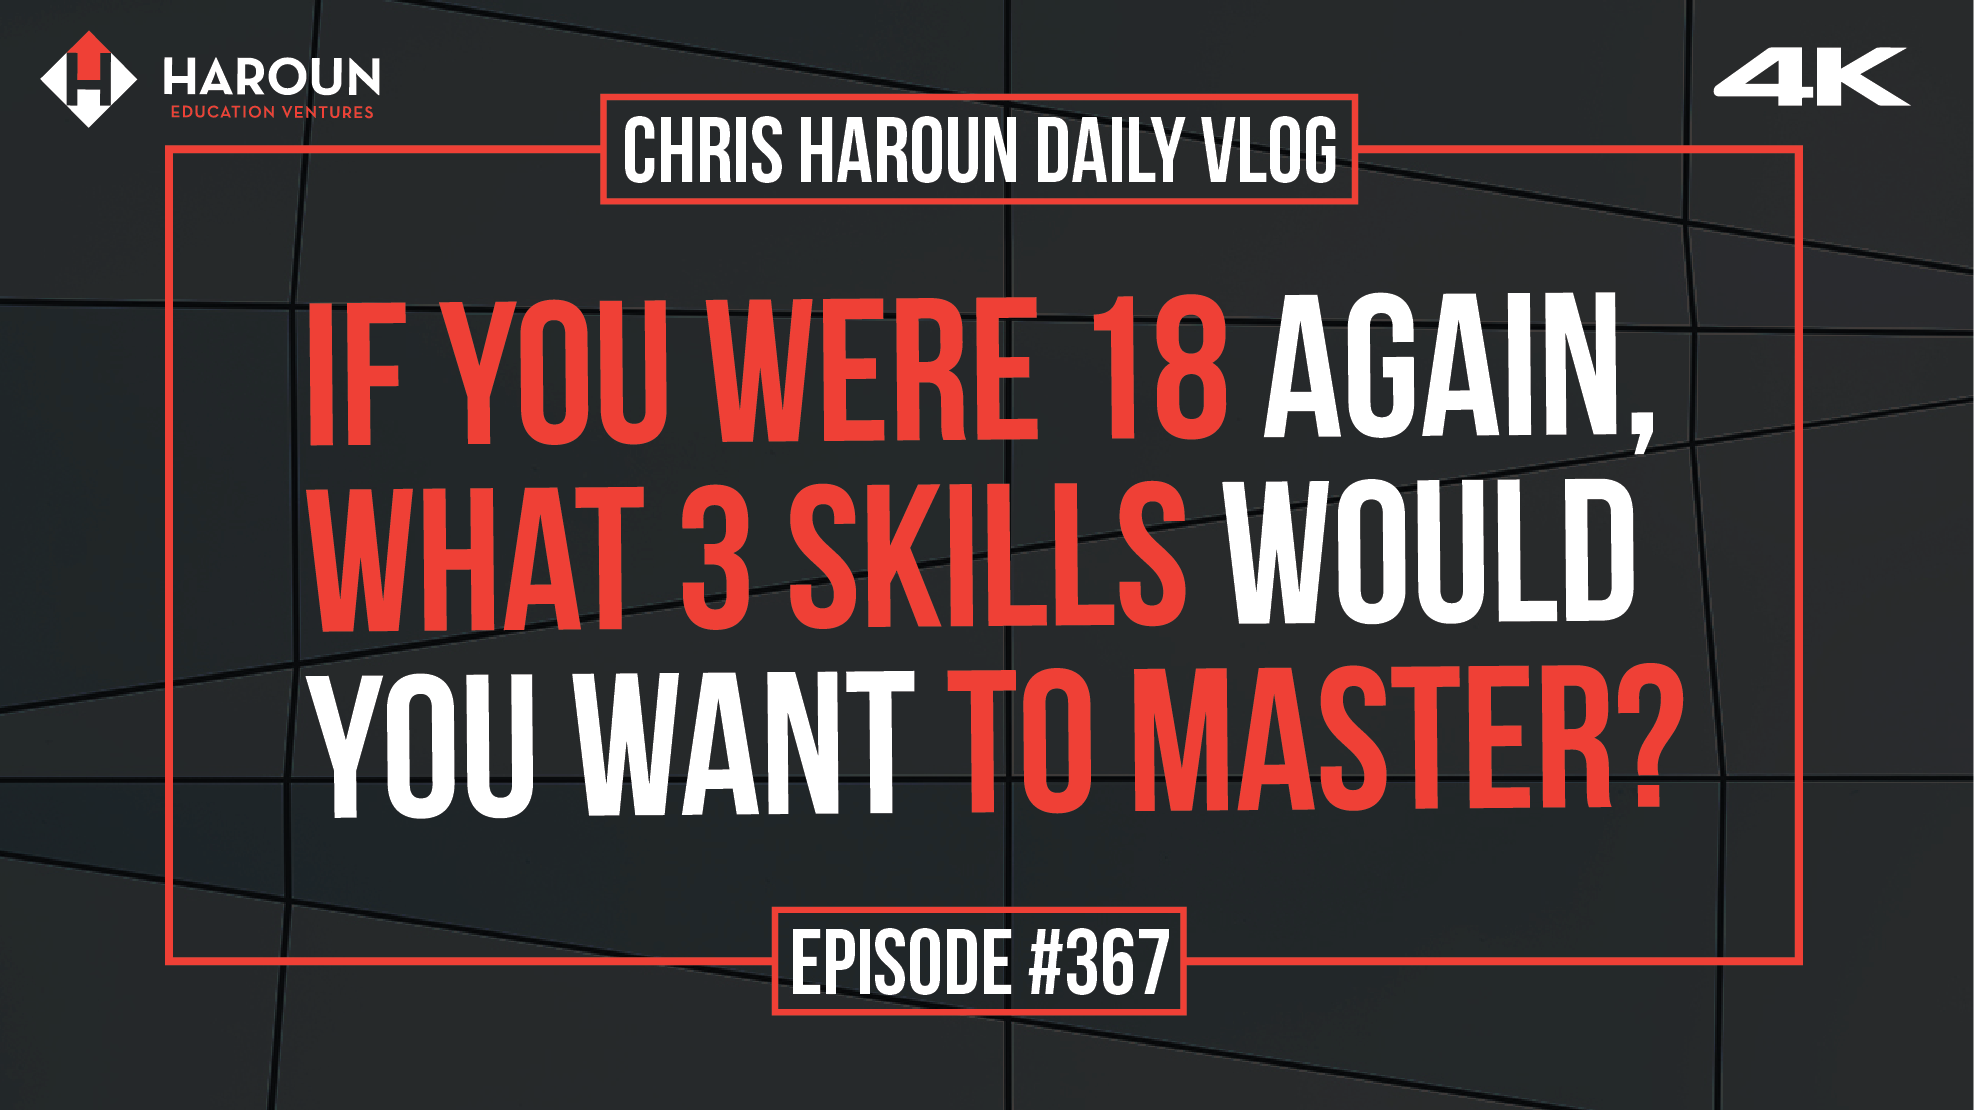 VLOG_367_8_2_2019_If You Were 18 Again,  What 3 Skills Would  You Want to Master?.png